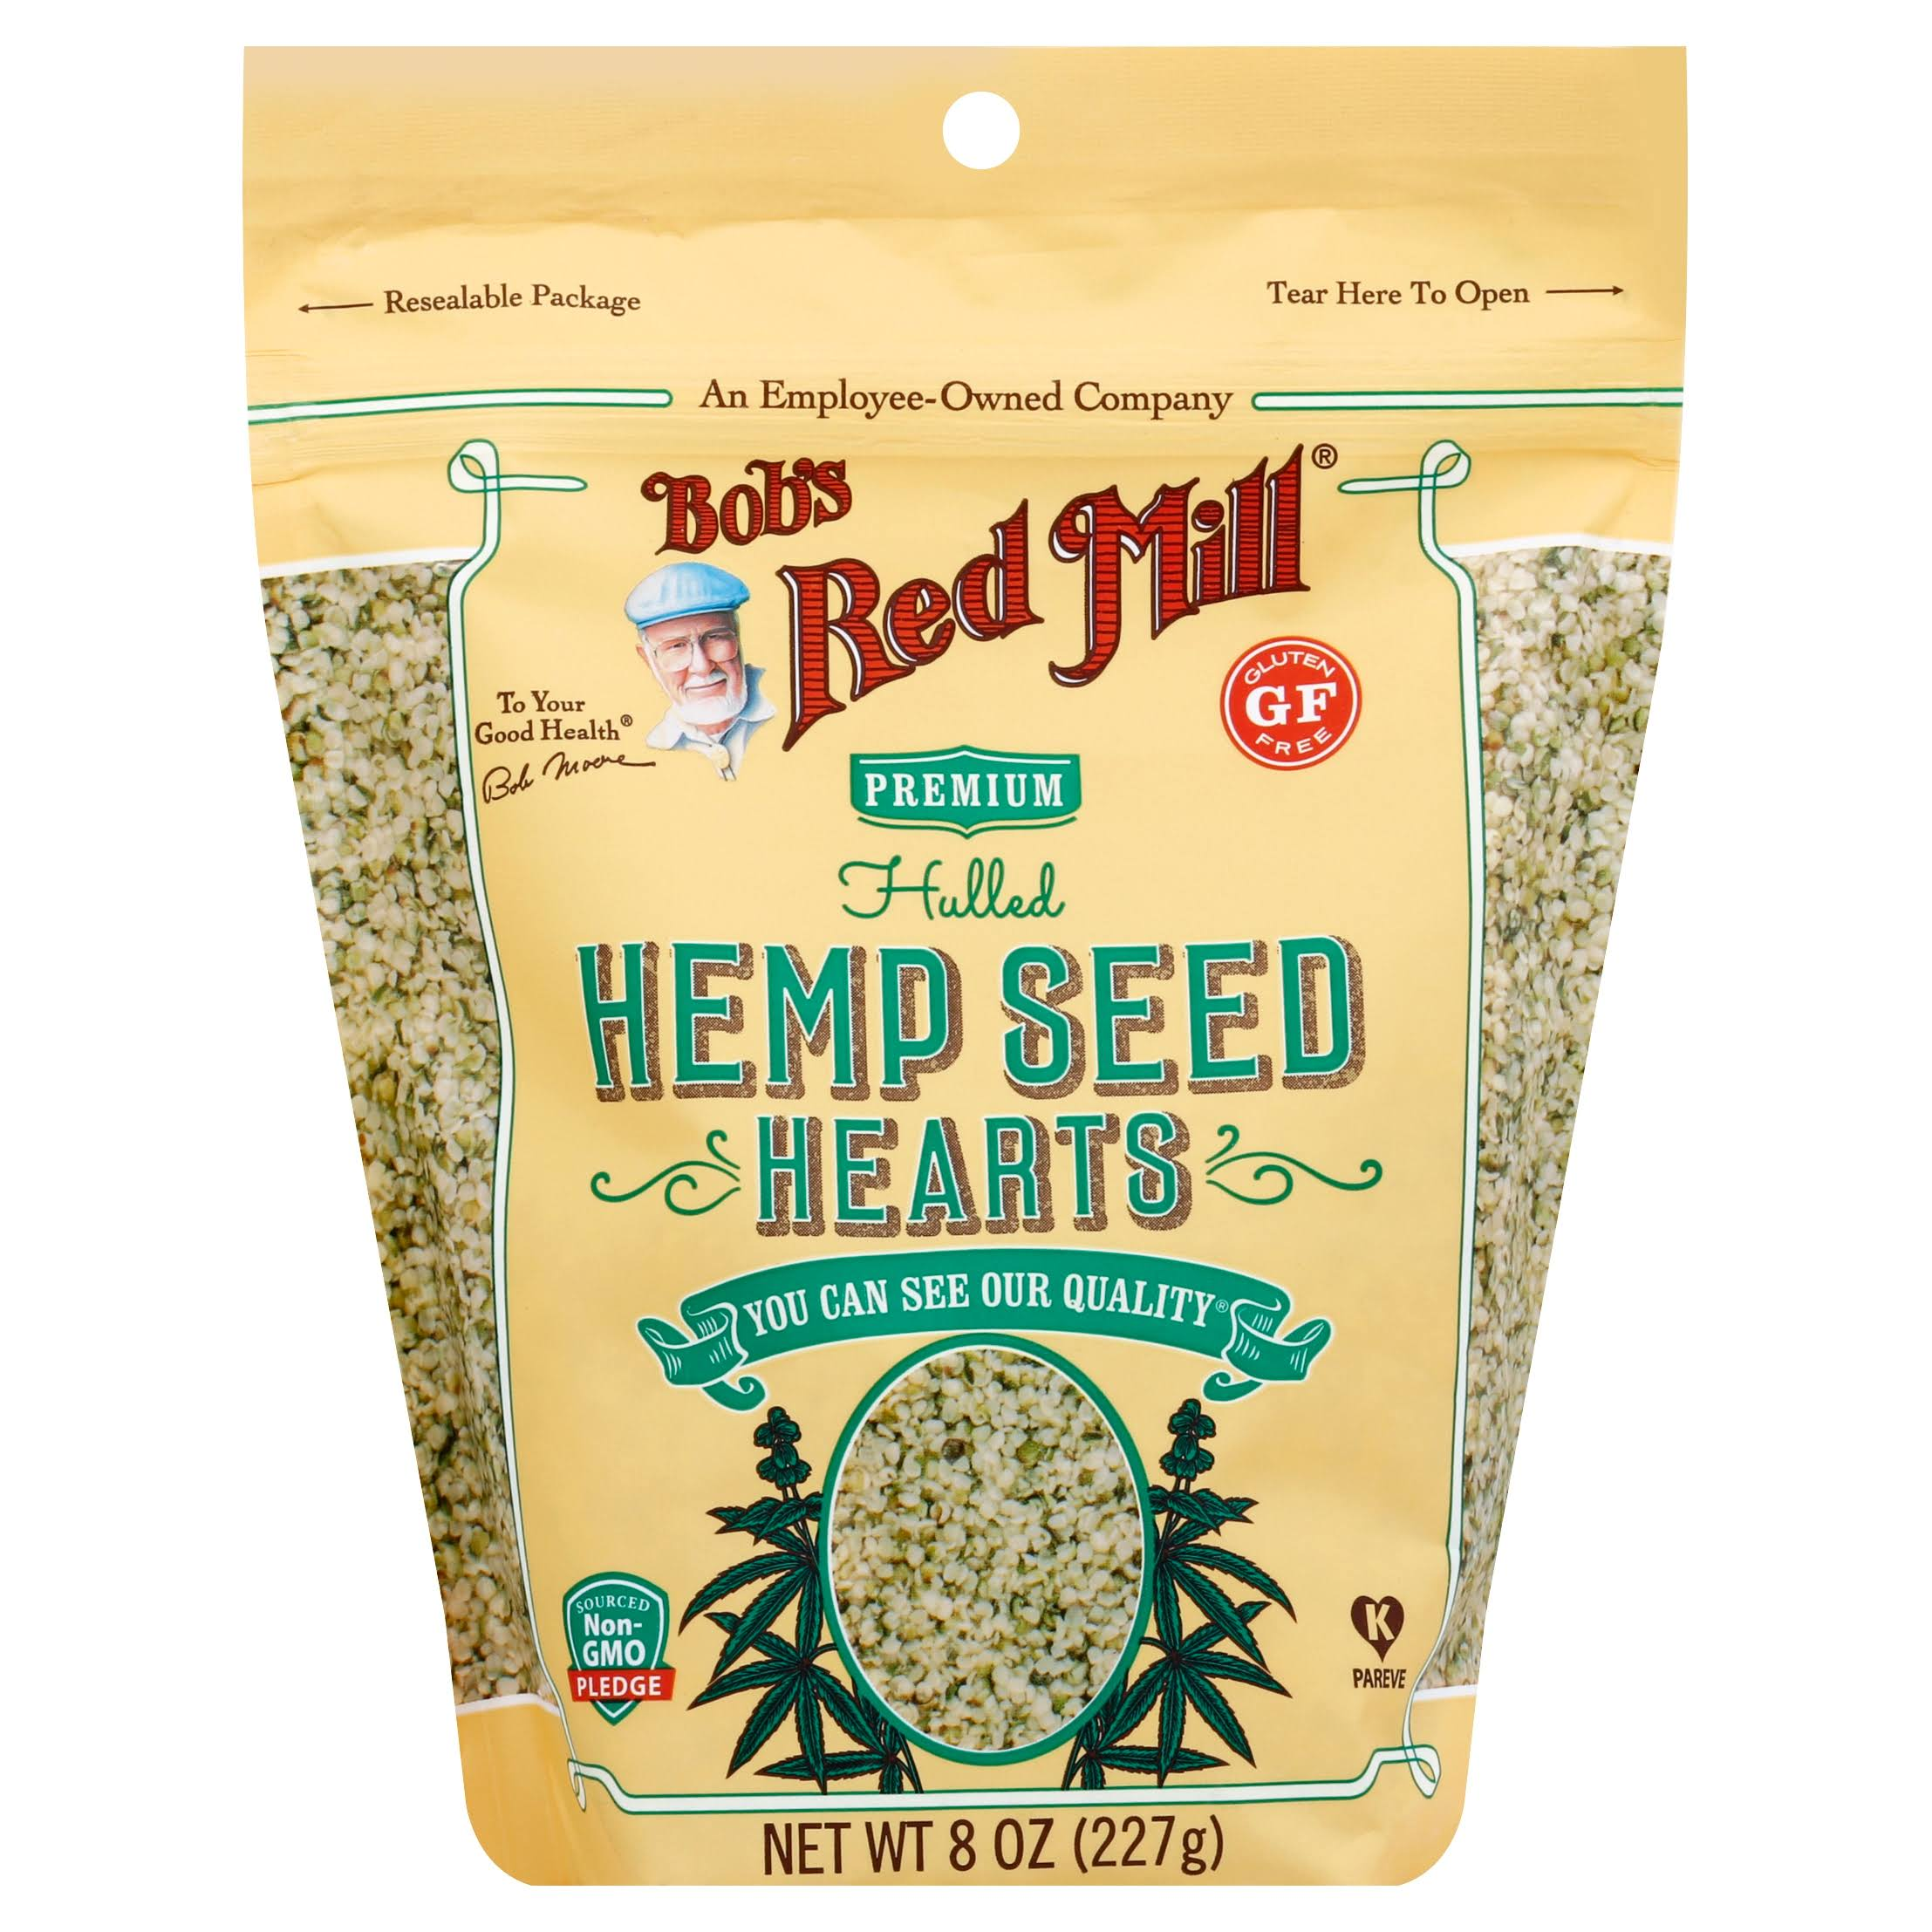 Bobs Red Mill Hemp Seed Hearts, Premium, Hulled - 8 oz